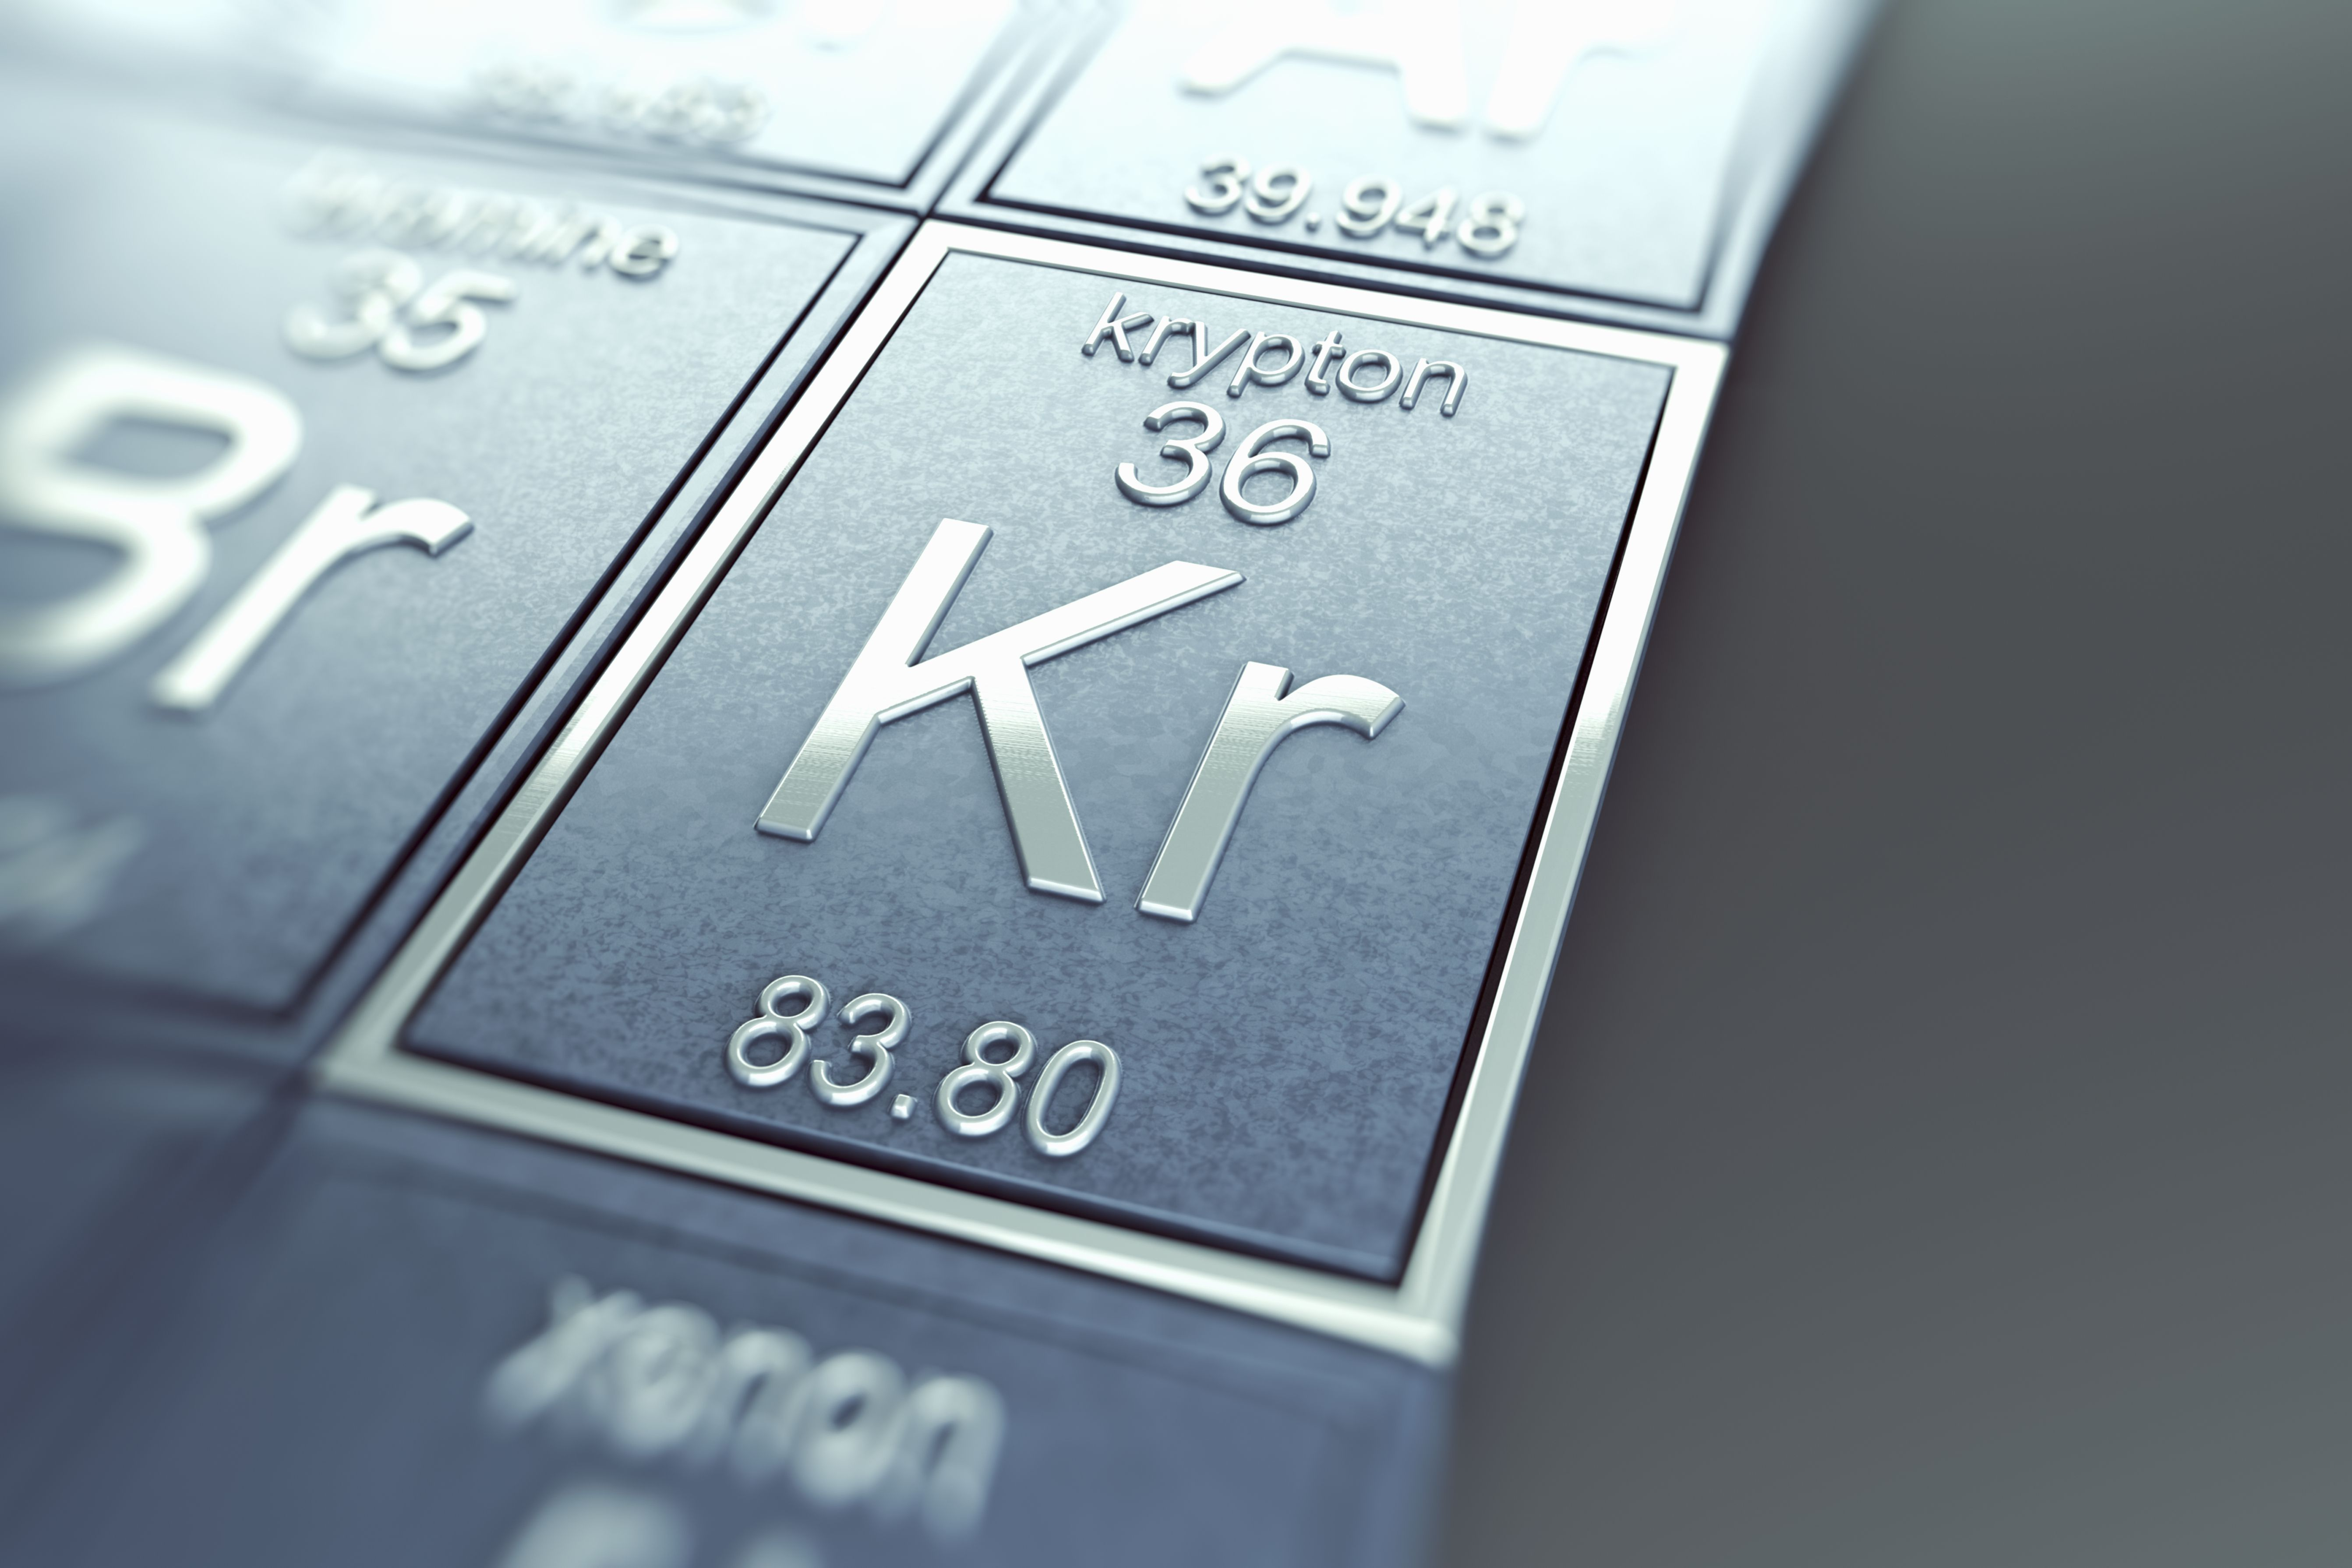 Krypton is a noble gas.